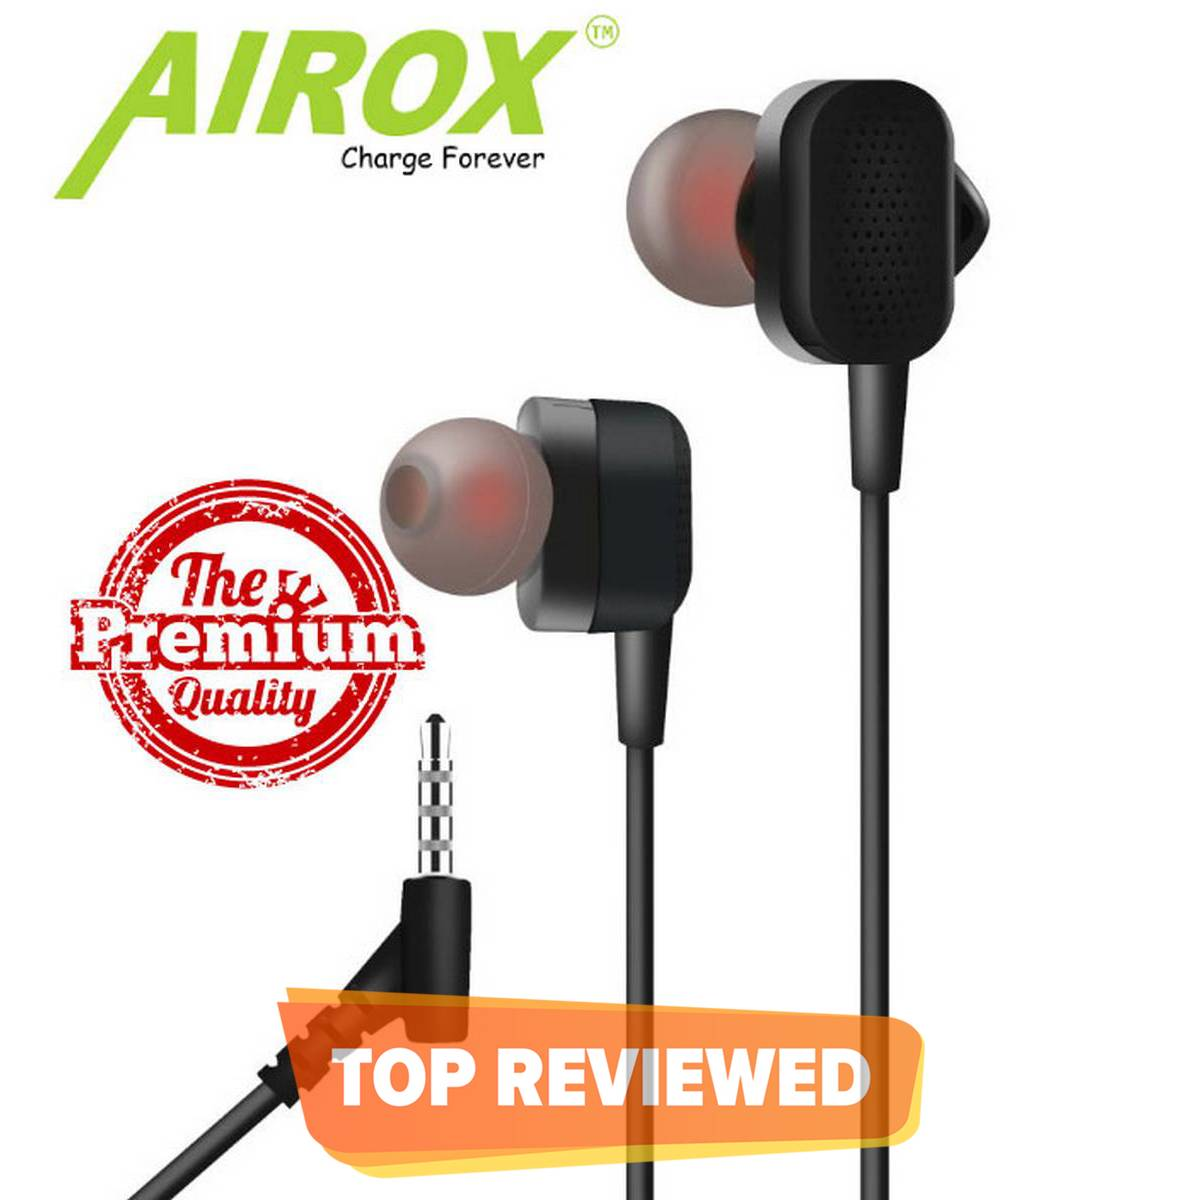 Best Universal Buds Handsfree - AIROX HF 06 - Quality Sound for Gamming - Wired with Mic Super comfortable handsfree for girls men - 3.5mm jack Earphones Ear Buds , Head phones for Android Mobile Phones Tablet PC